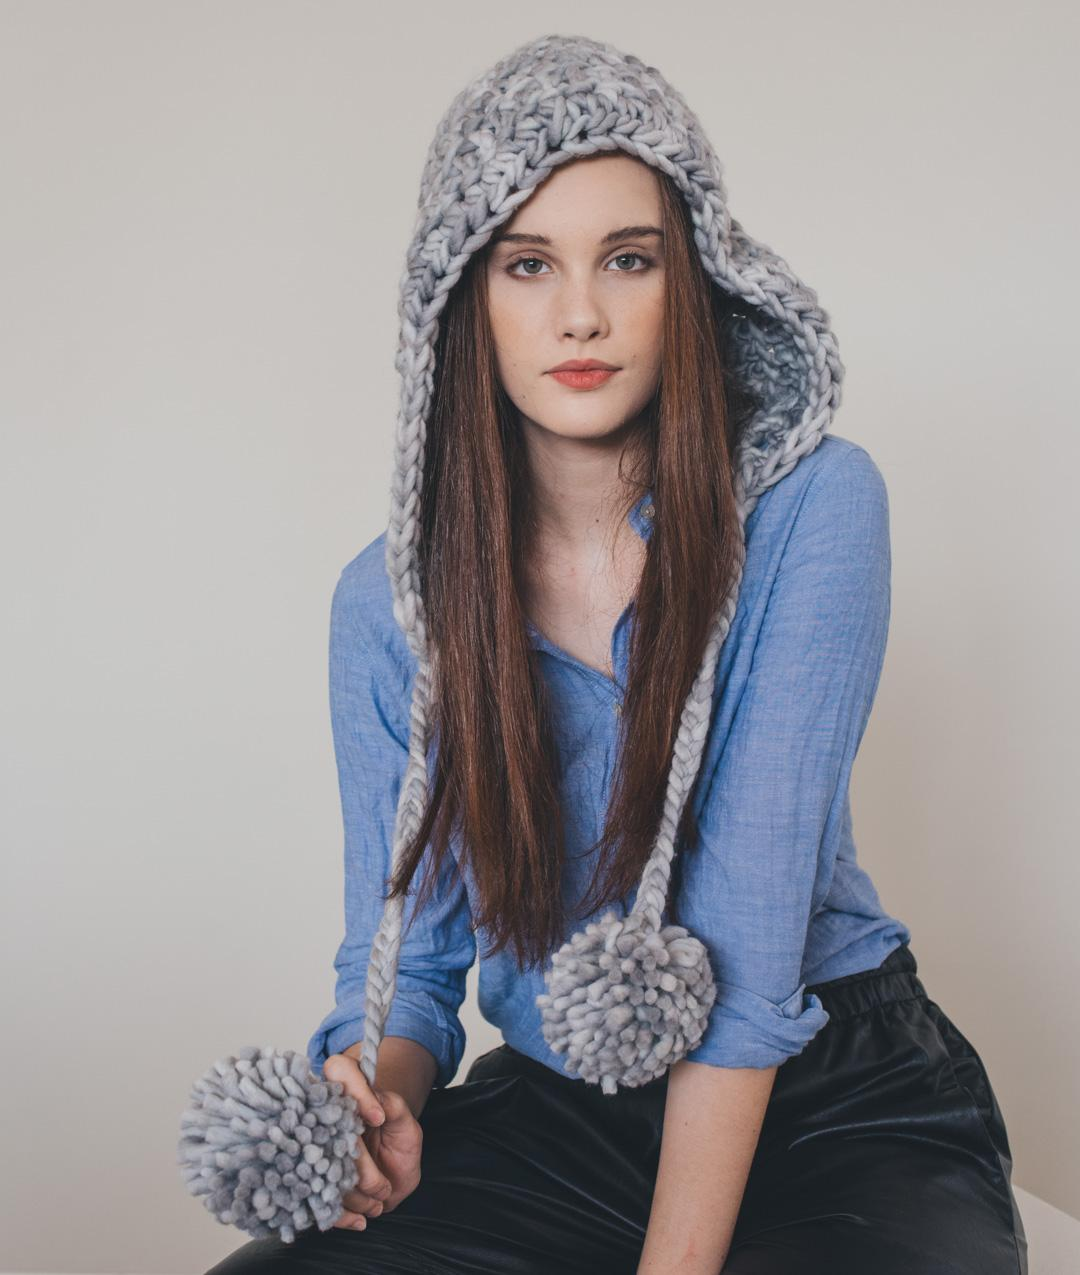 Hats and Beanies - Wool - LILY HOOD - 1